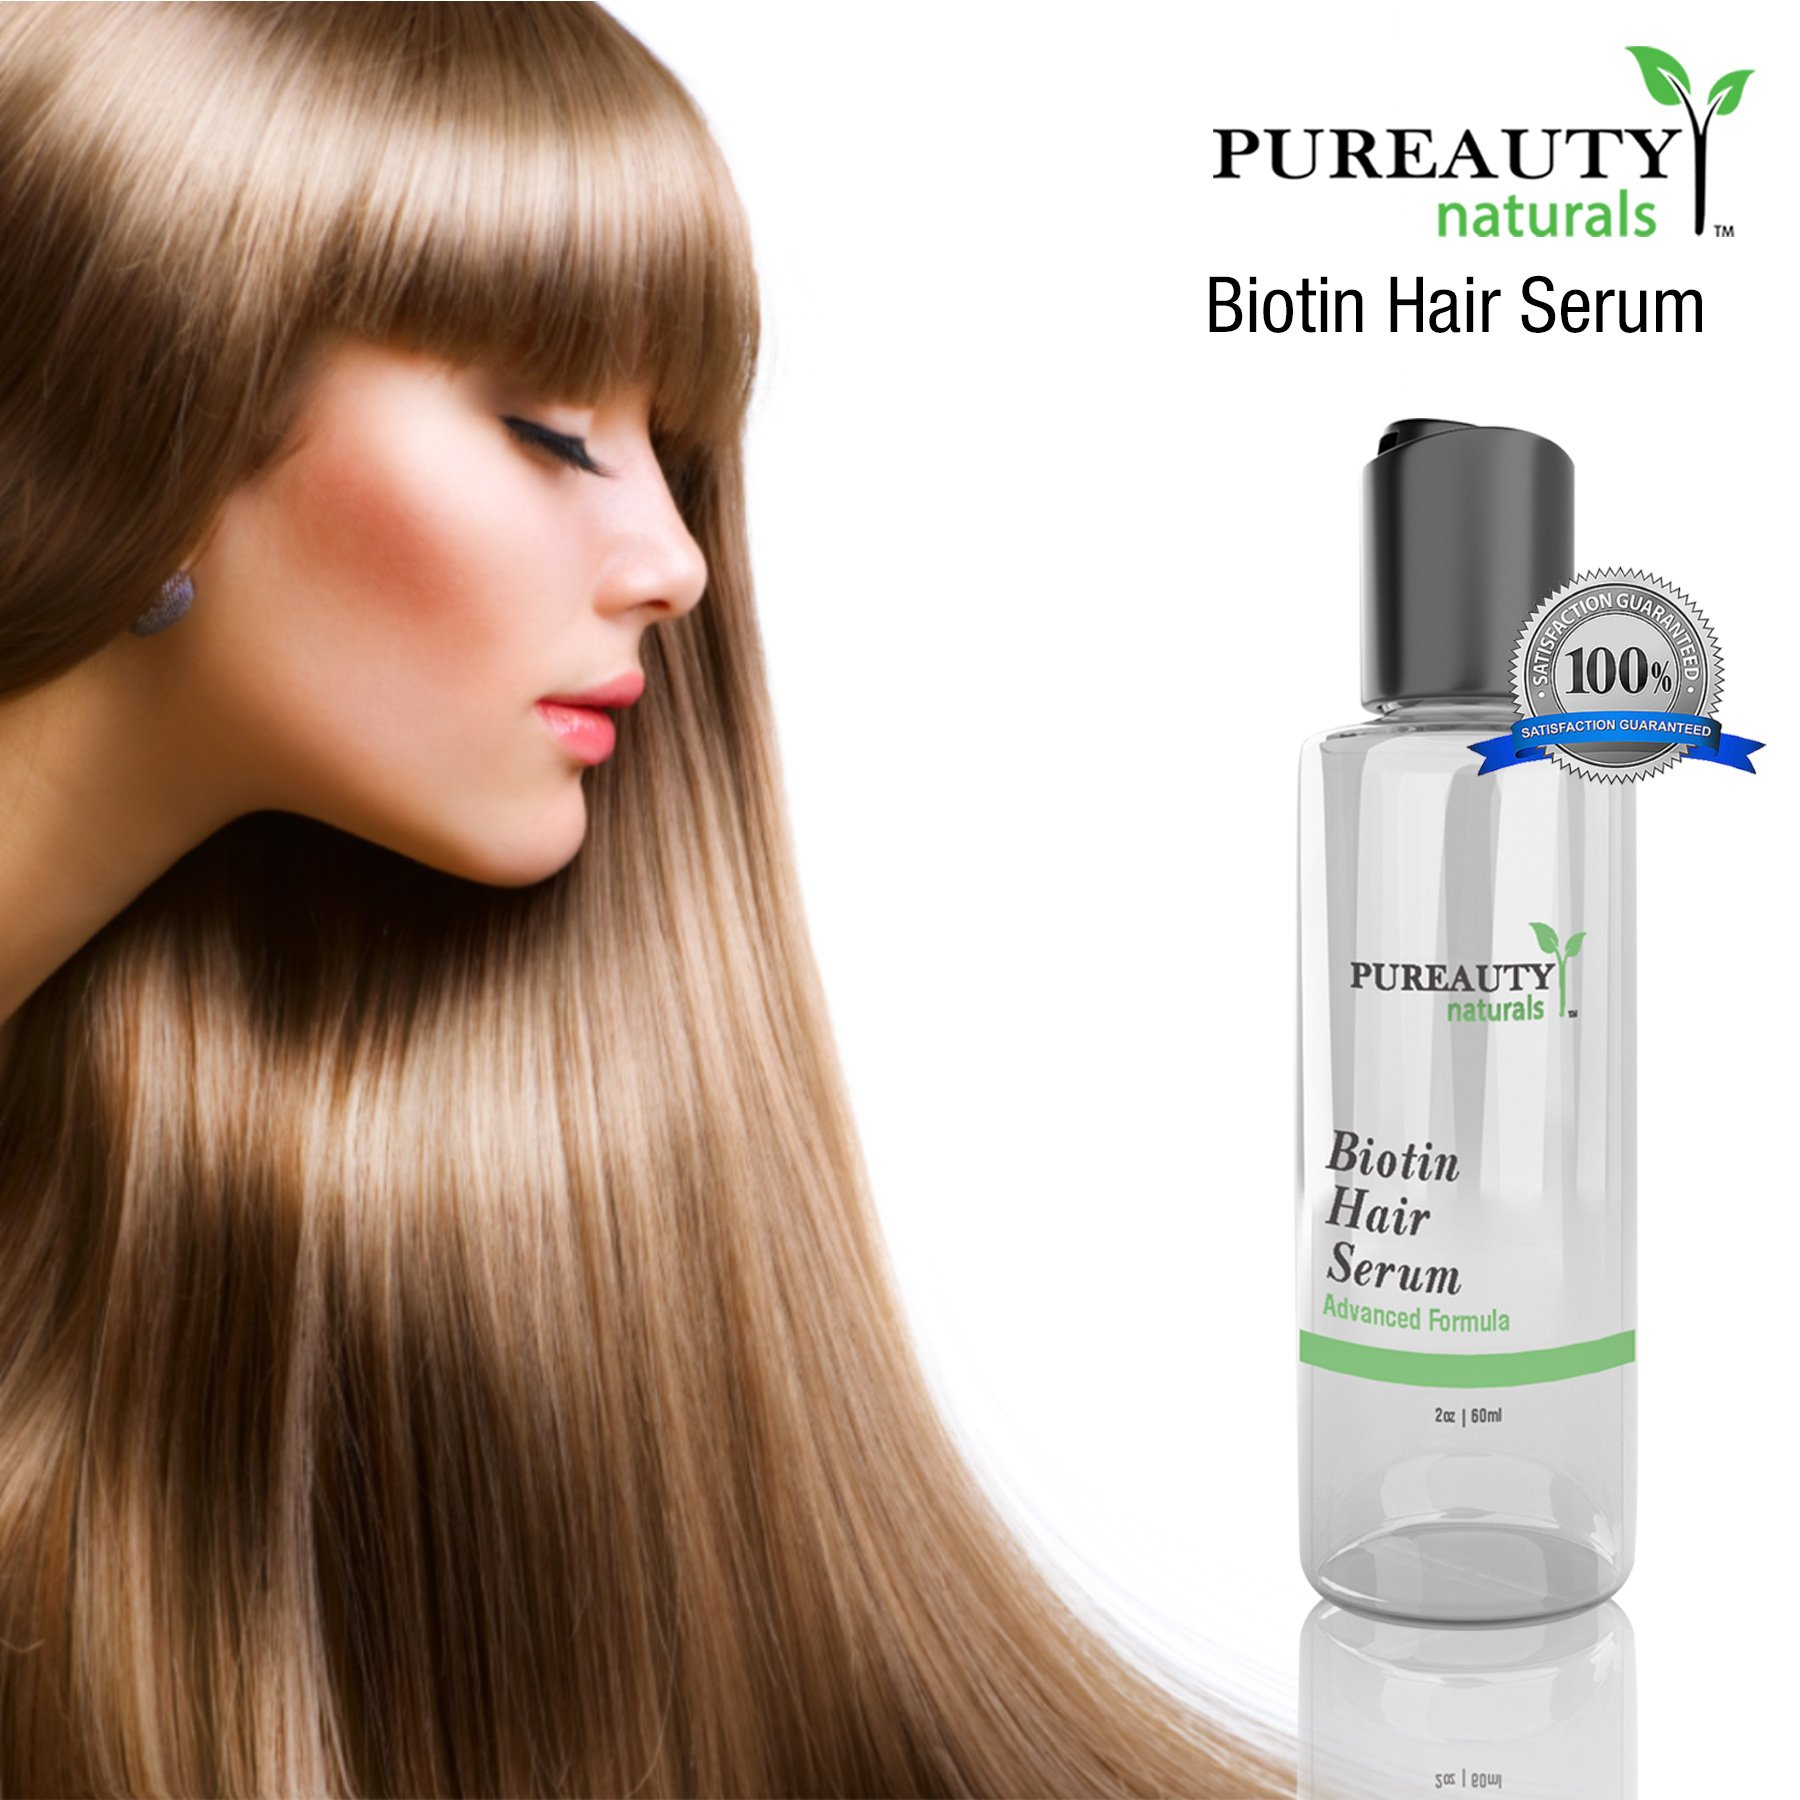 Biotin Hair Growth Serum by Pureauty Naturals – Advanced Topical Formula to Help Grow Healthy, Strong Hair – Suitable For Men & Women Of All Hair Types – Hair Loss Support by Pureauty Naturals (Image #5)